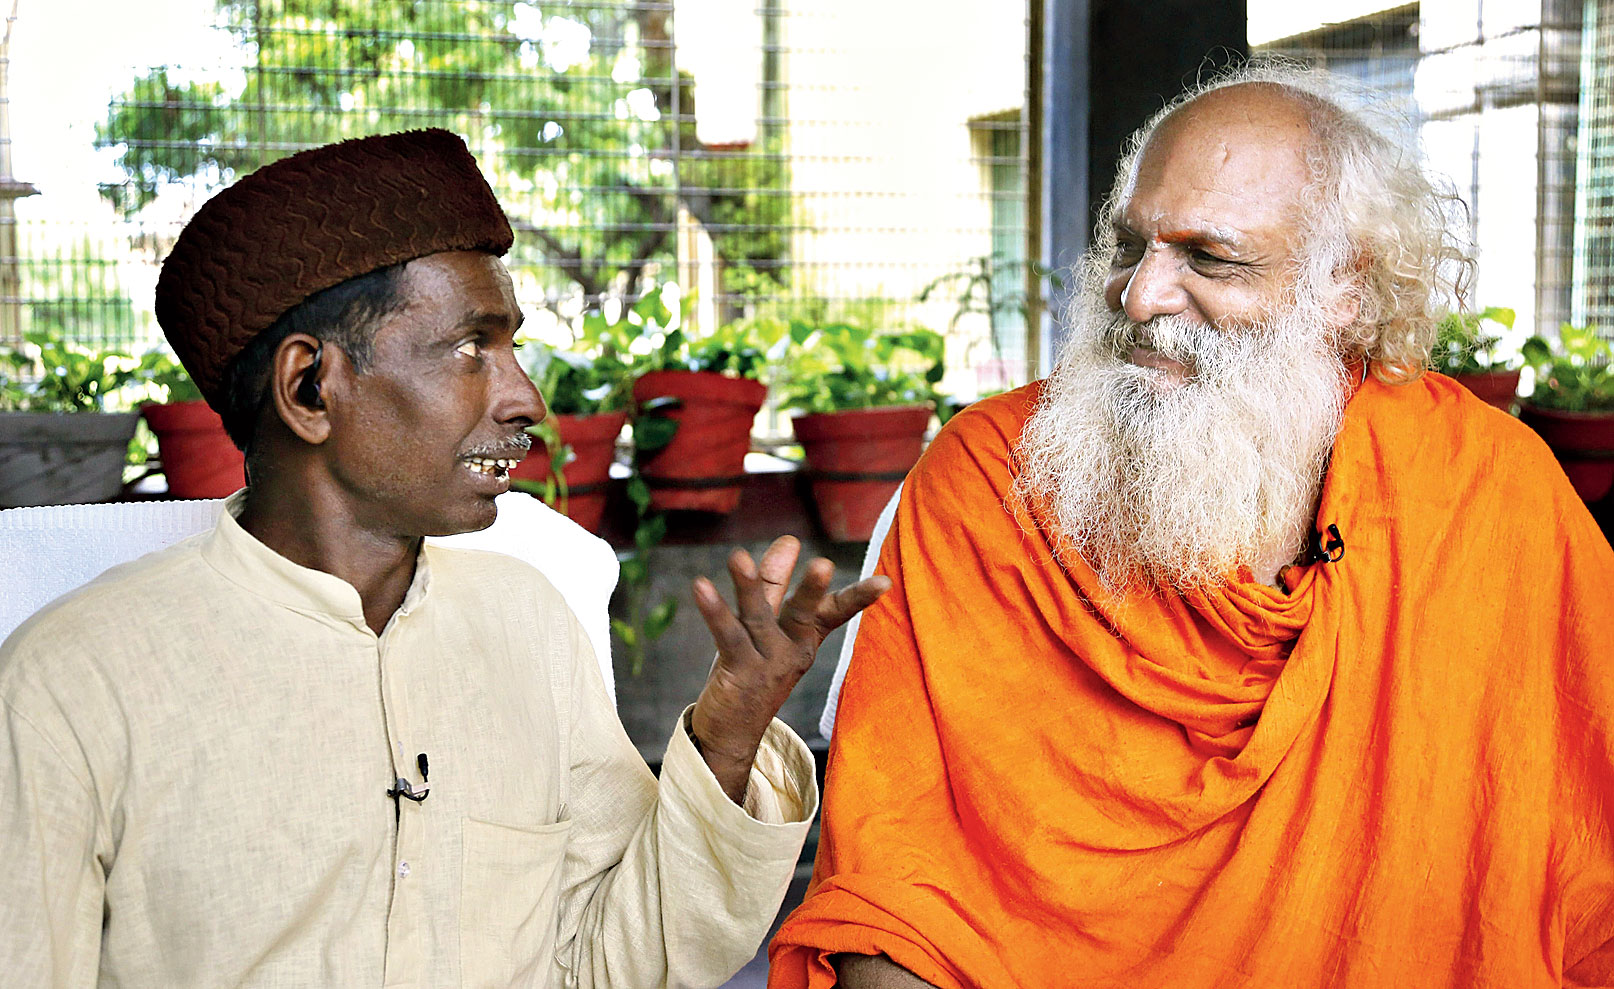 Iqbal Ansari and Nirmohi Akhara mahant Dharam Das, the main litigants in the case, after the ruling on Thursday.